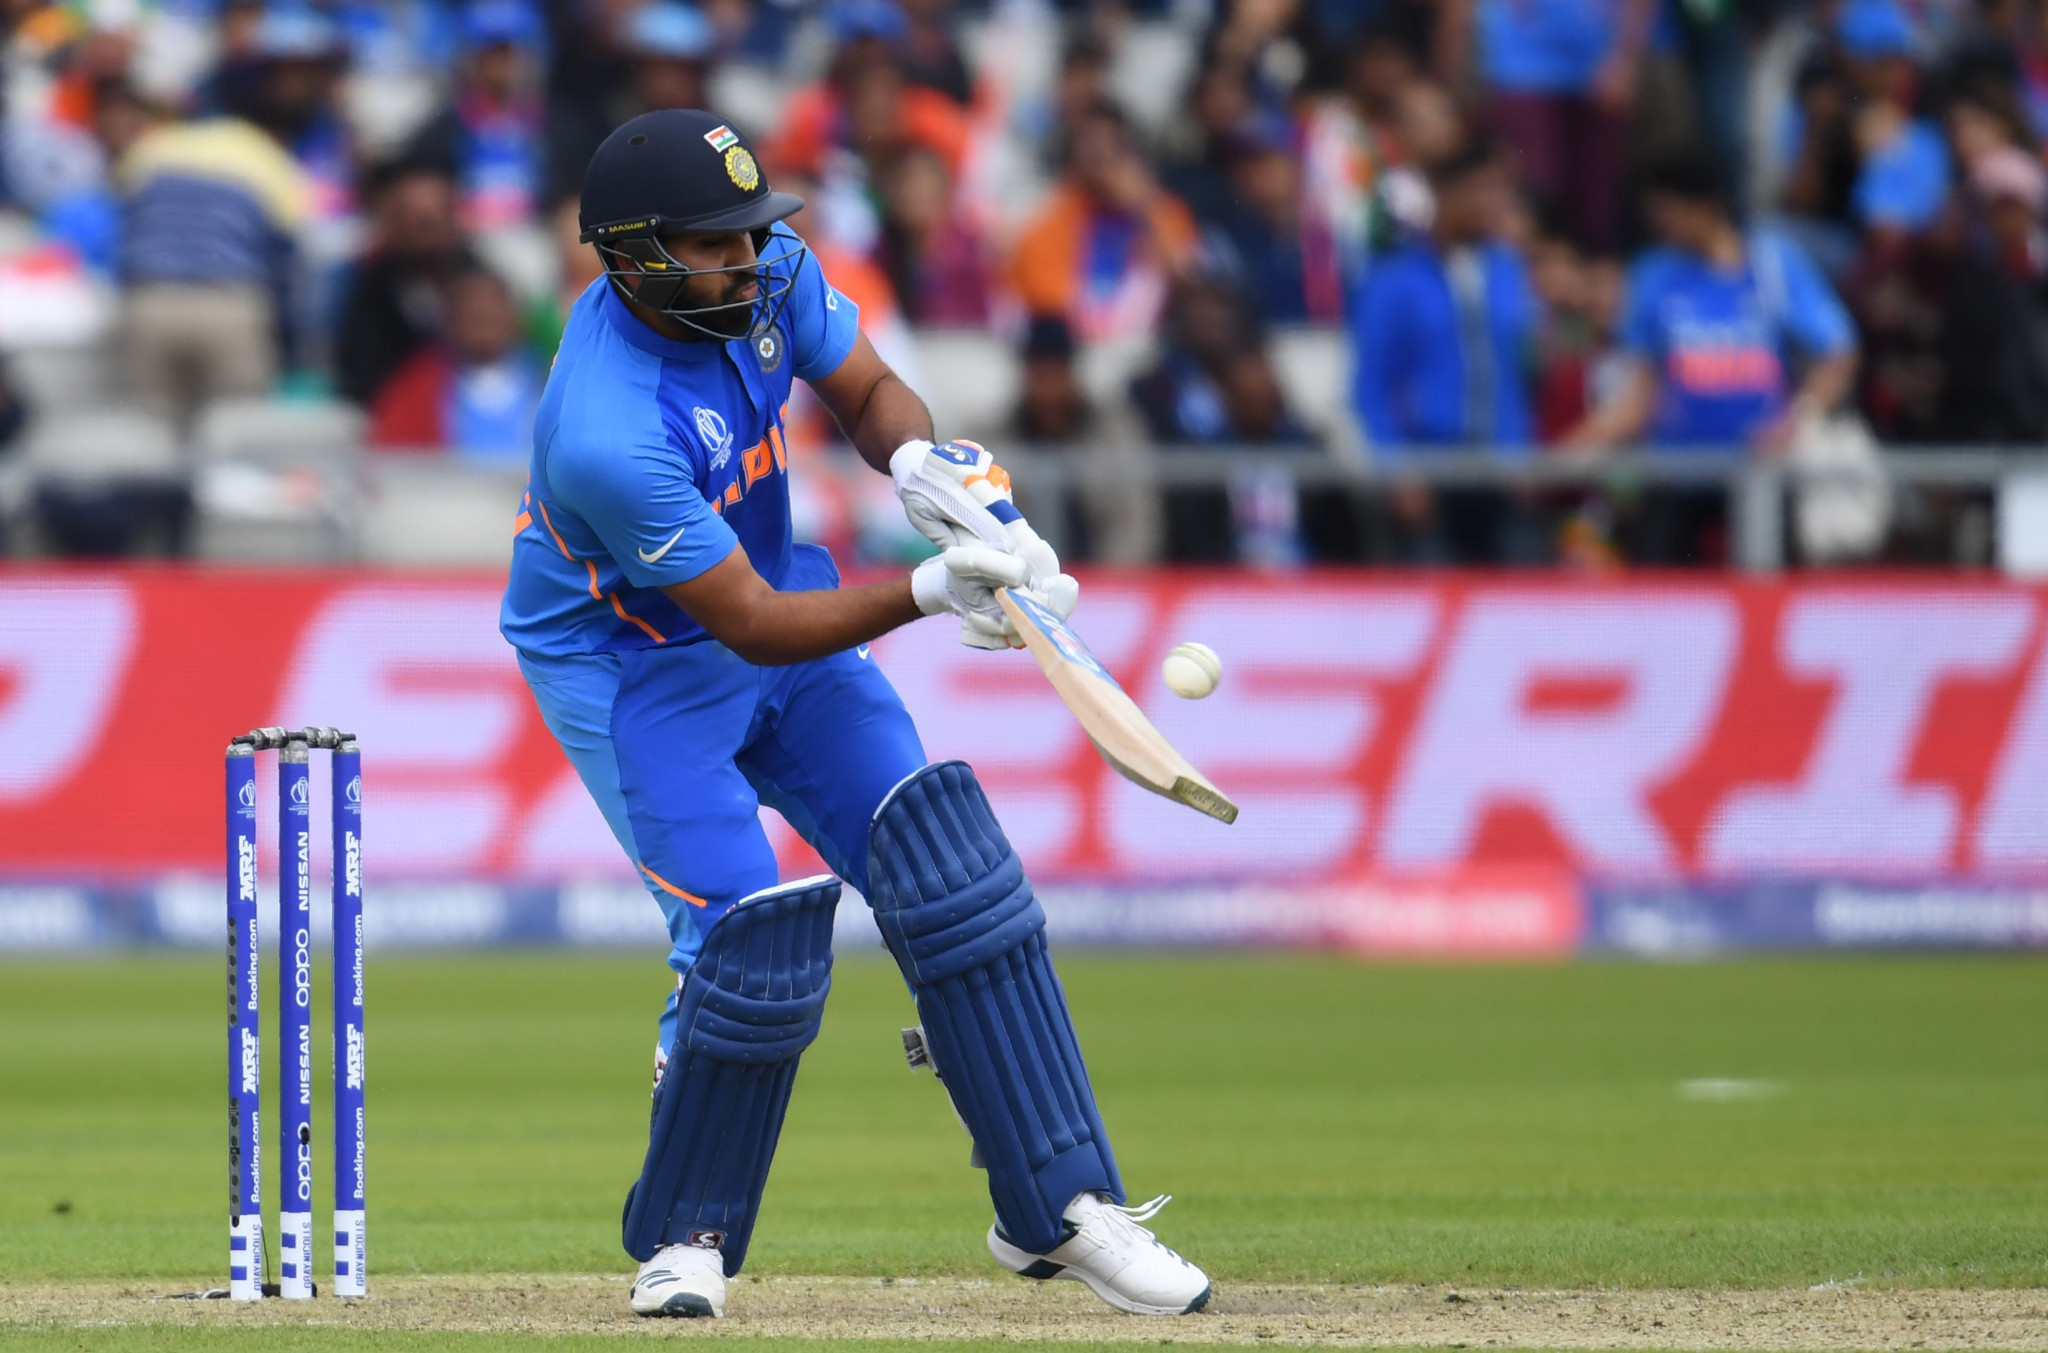 India beat Pakistan in rain-affected ICC Cricket World Cup clash